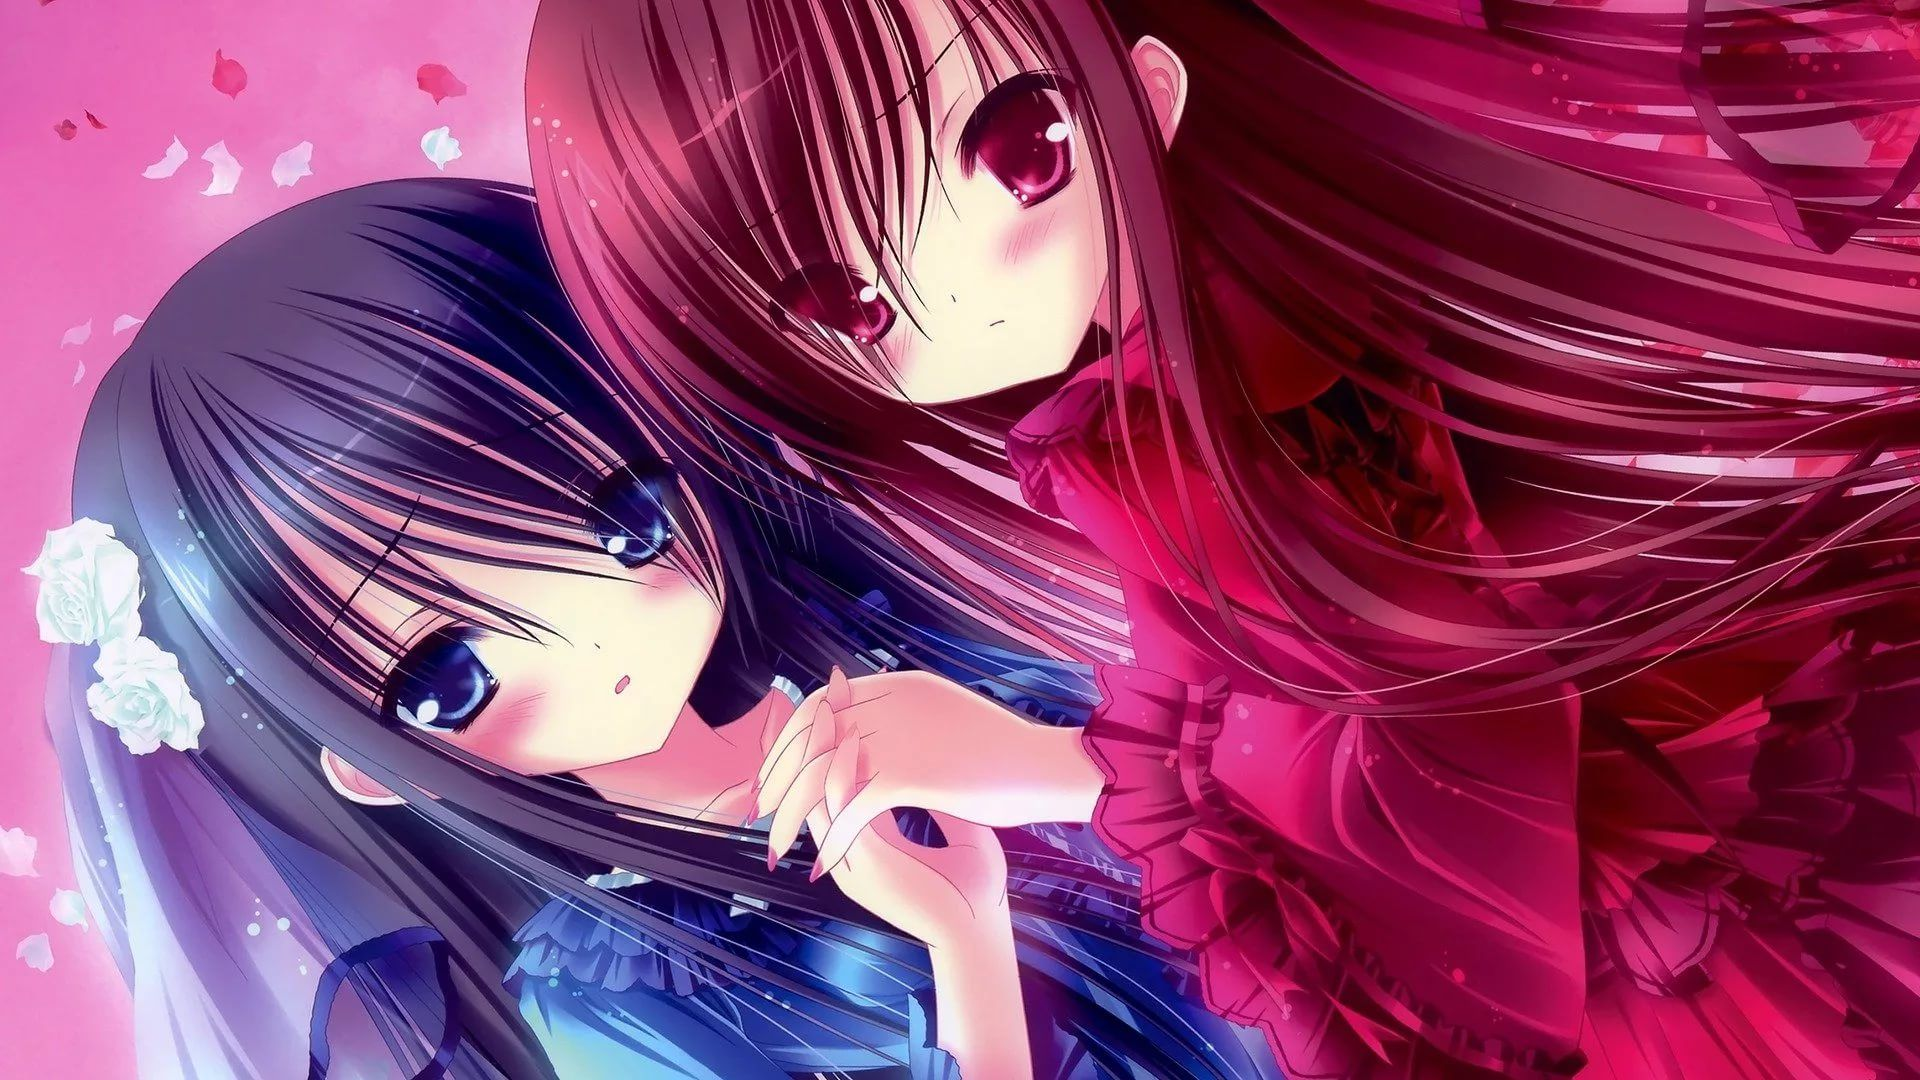 Cute Anime wallpaper download